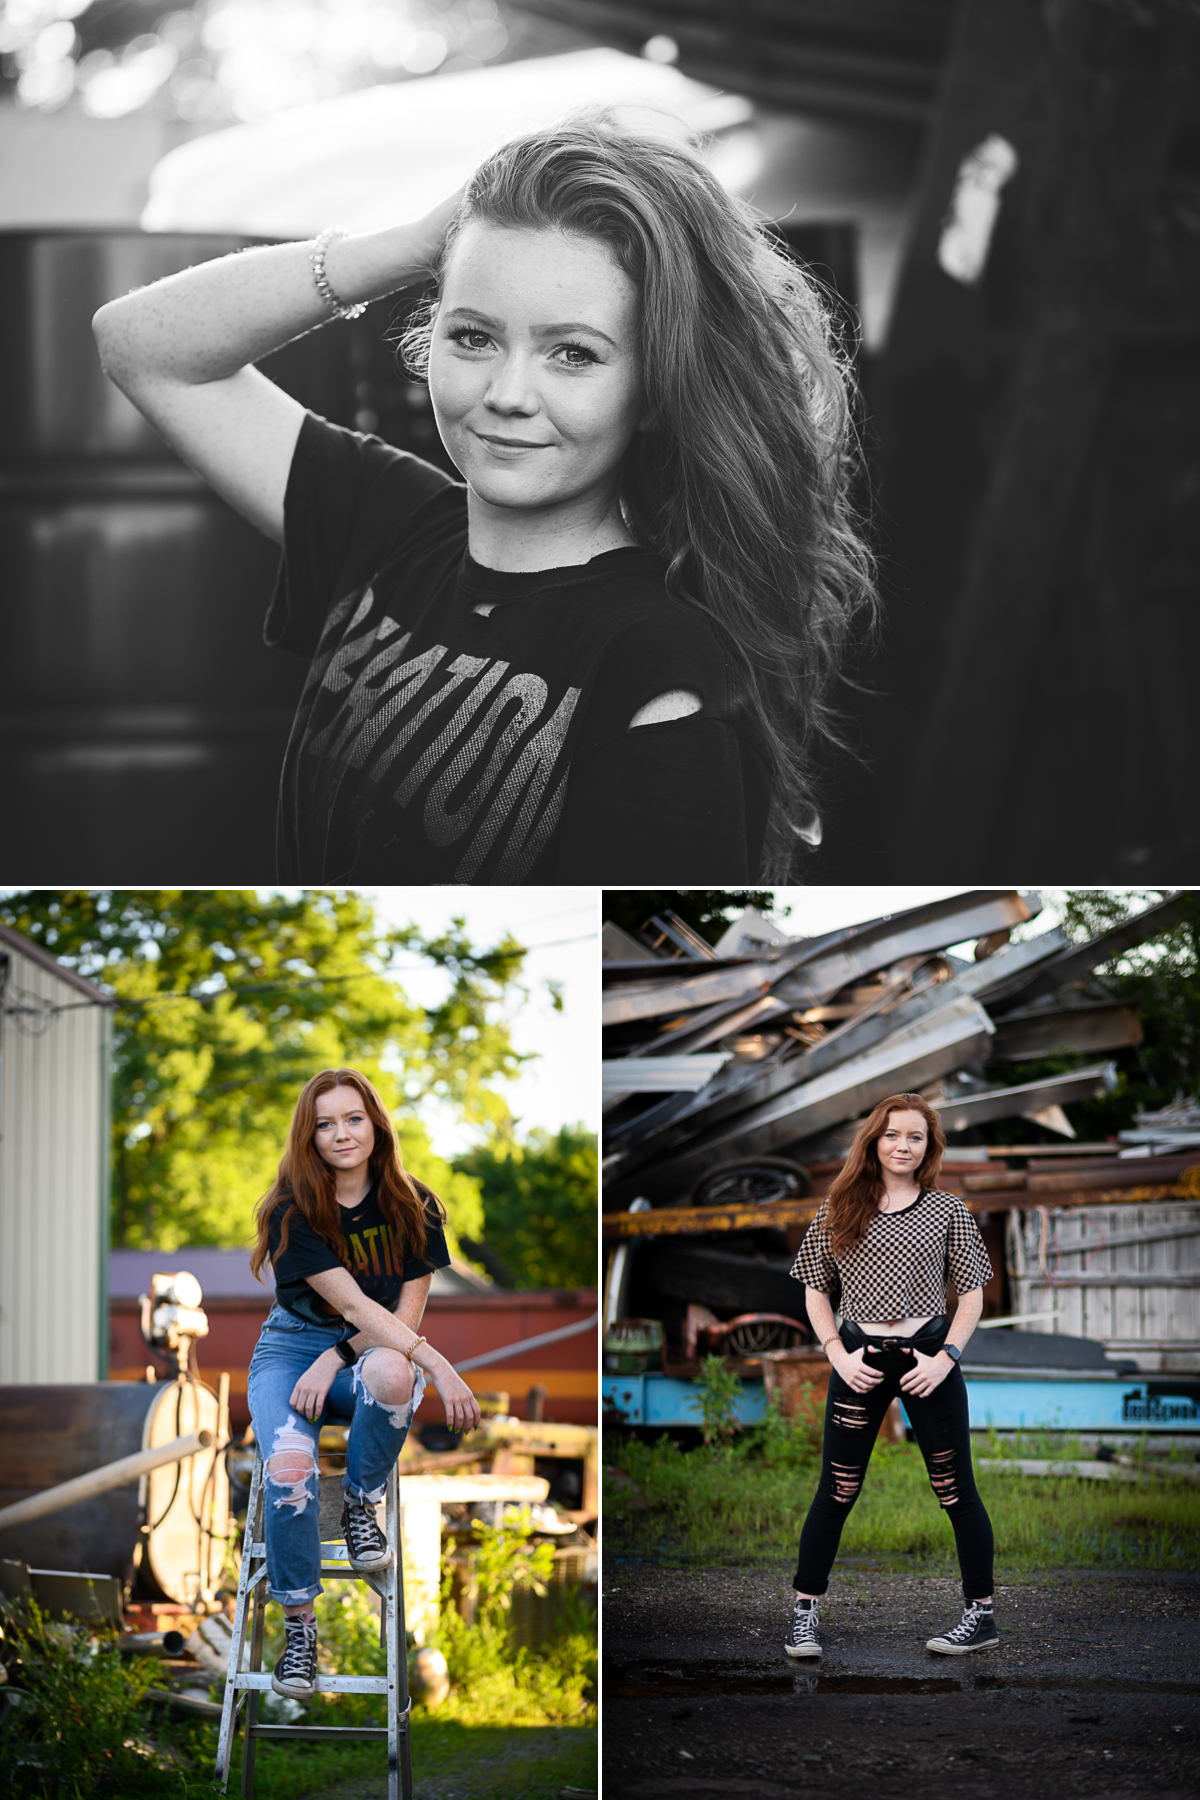 Senior-photography-junkyard-session-forrest-illinois-5.jpg